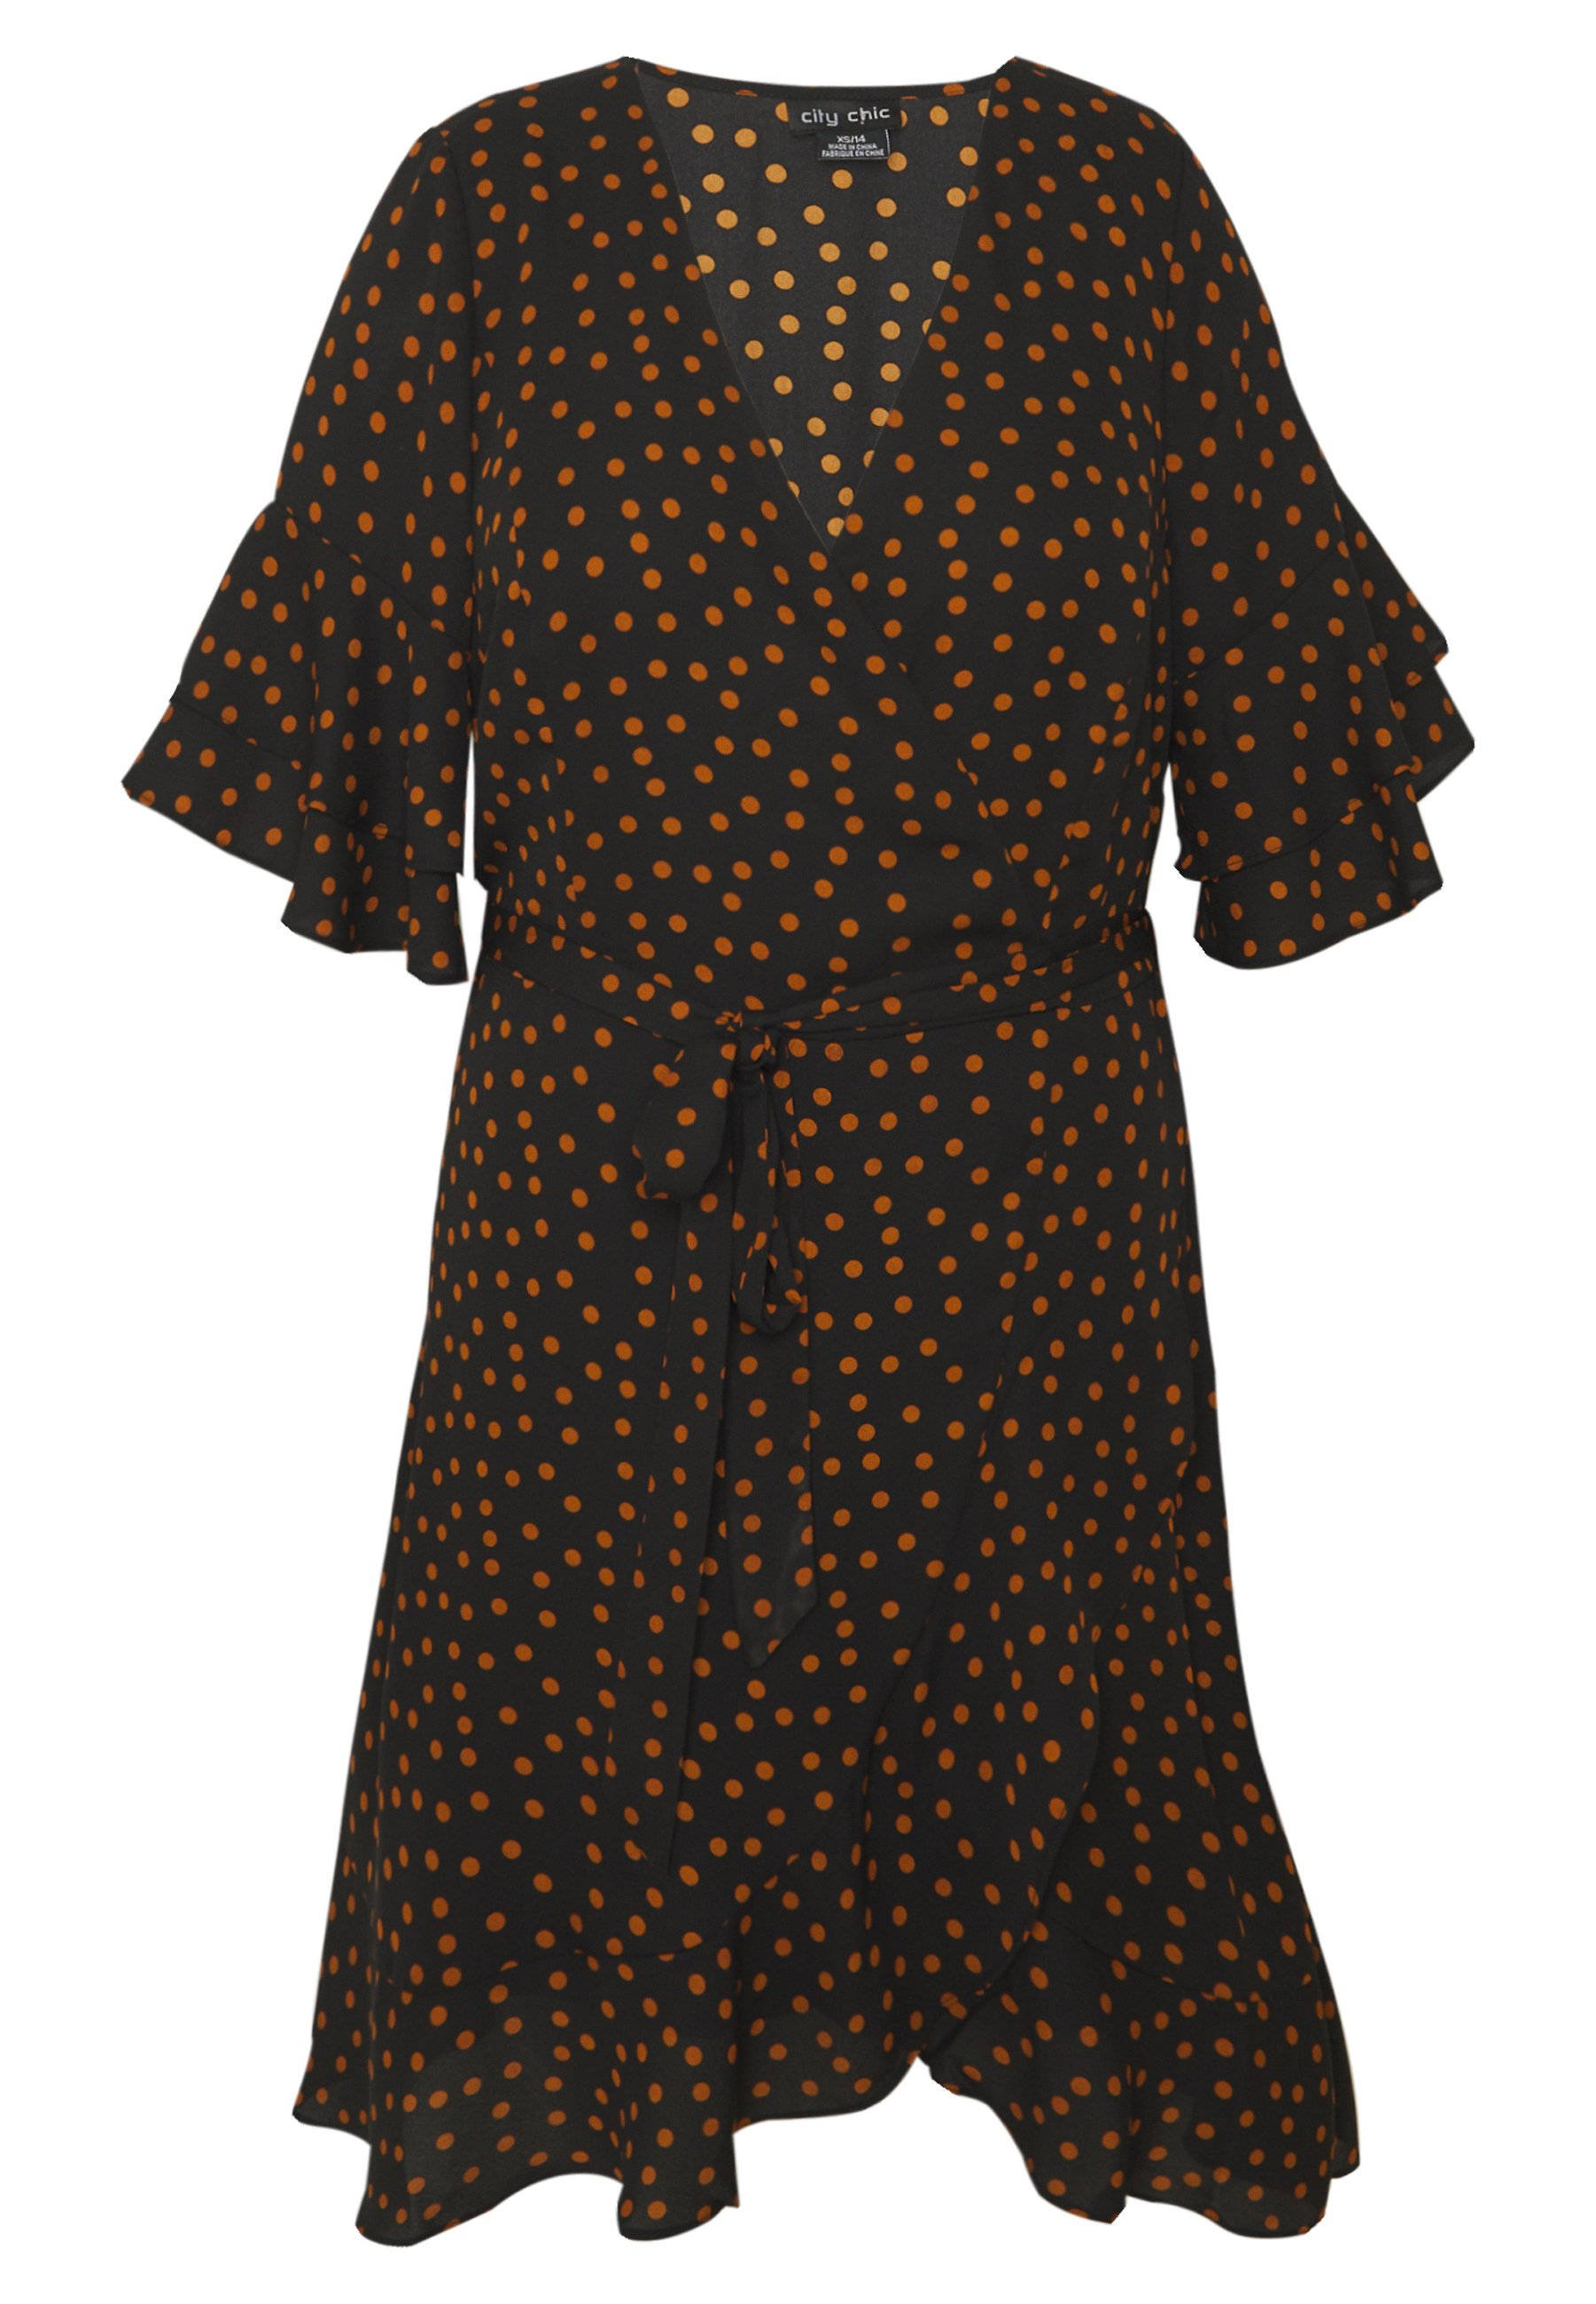 City Chic Dress Amber Spot - Vestito Estivo aF74Oan